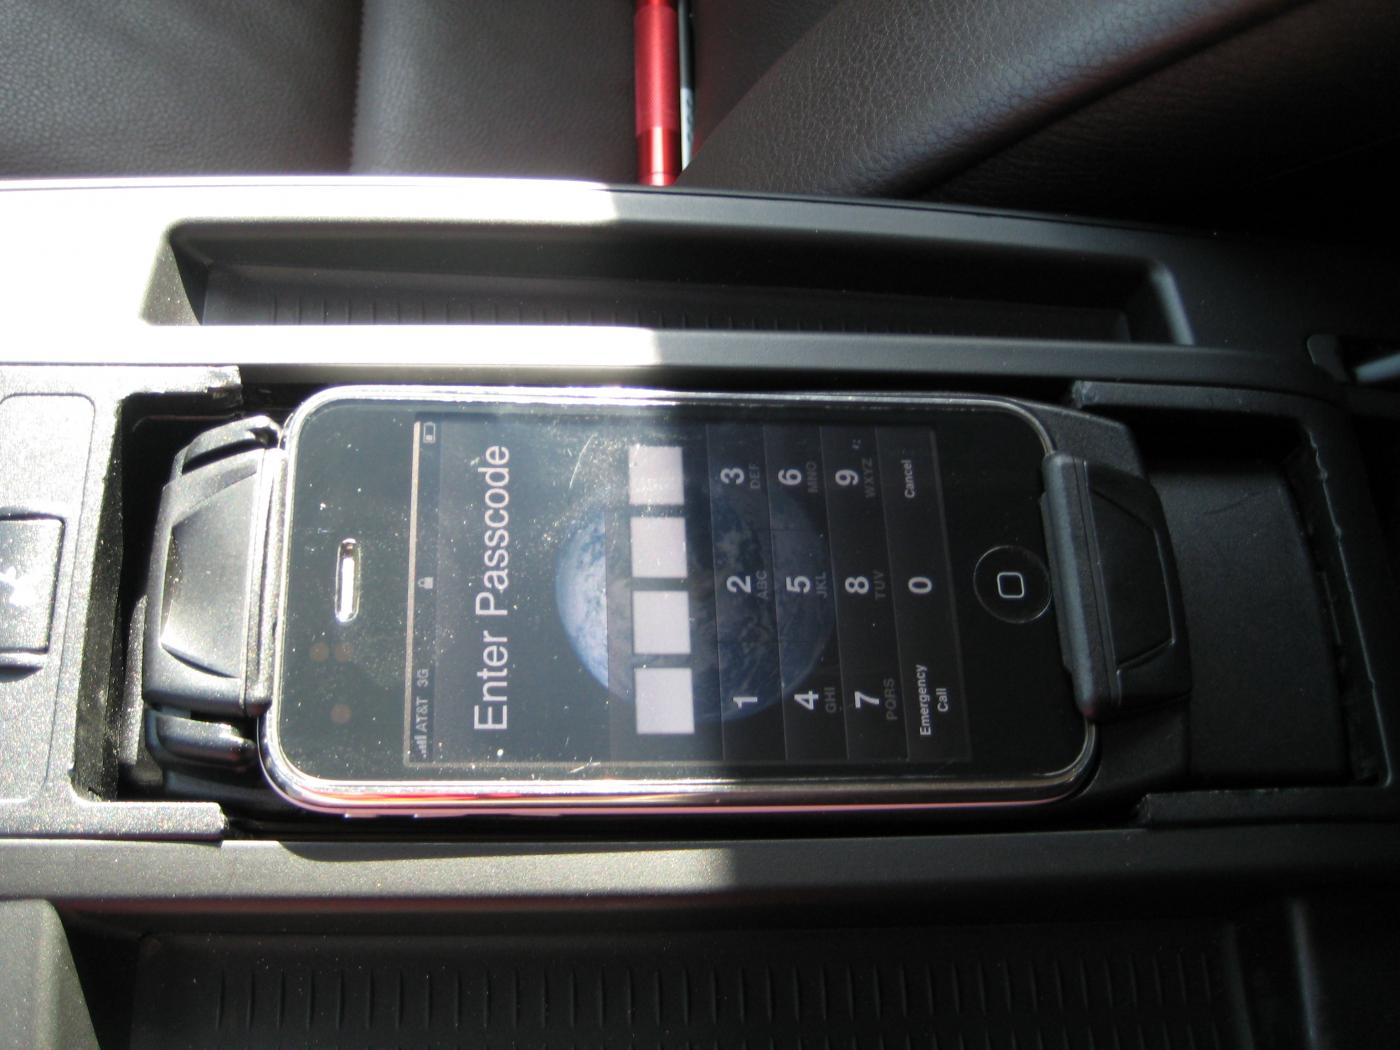 Anyone with an X3 and a center console phone snap-in adapter